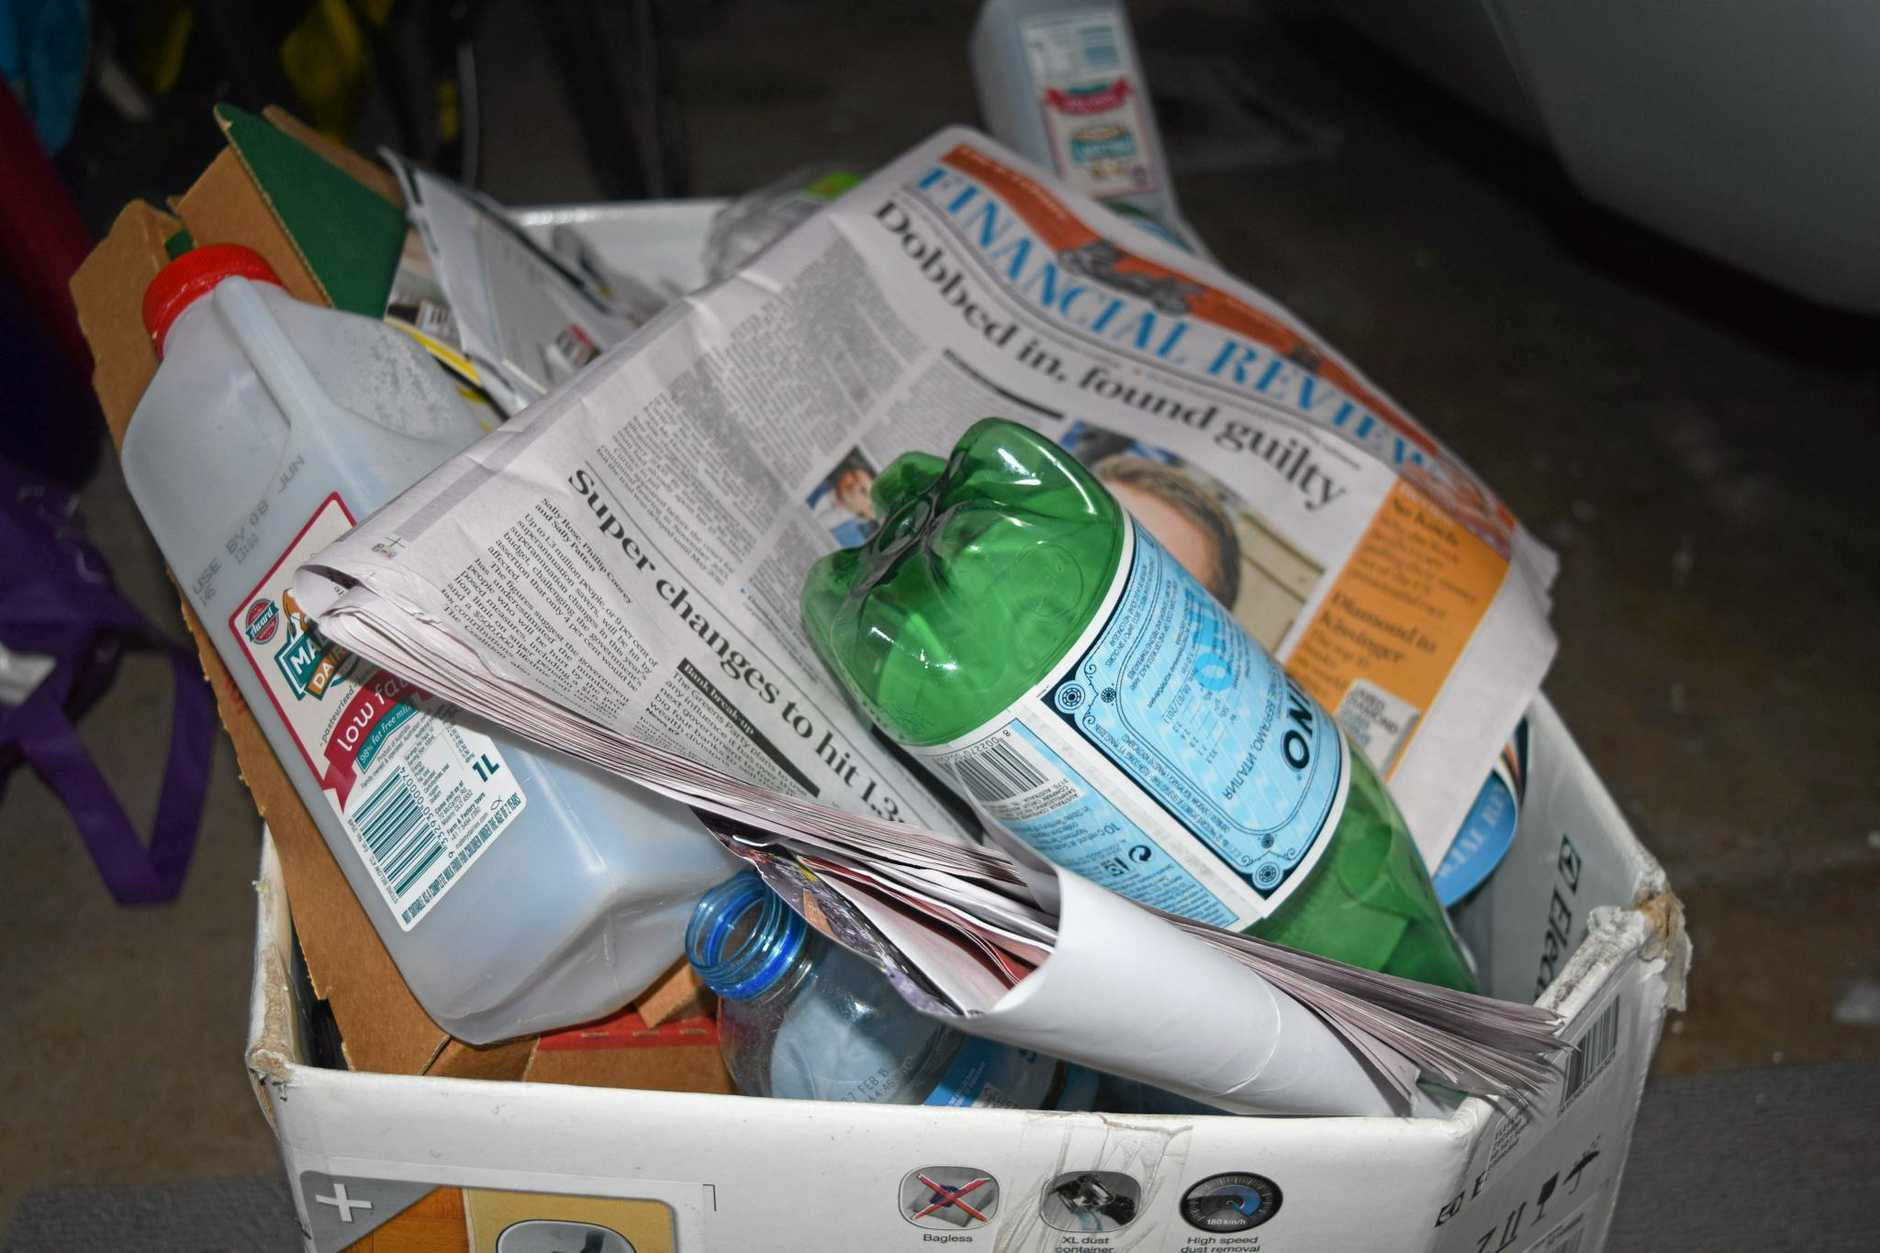 Recycling, the bane of my existence. Even this overflowing box in my garage - which I simply empty into our dumpster - is tired of my moaning about this problem.